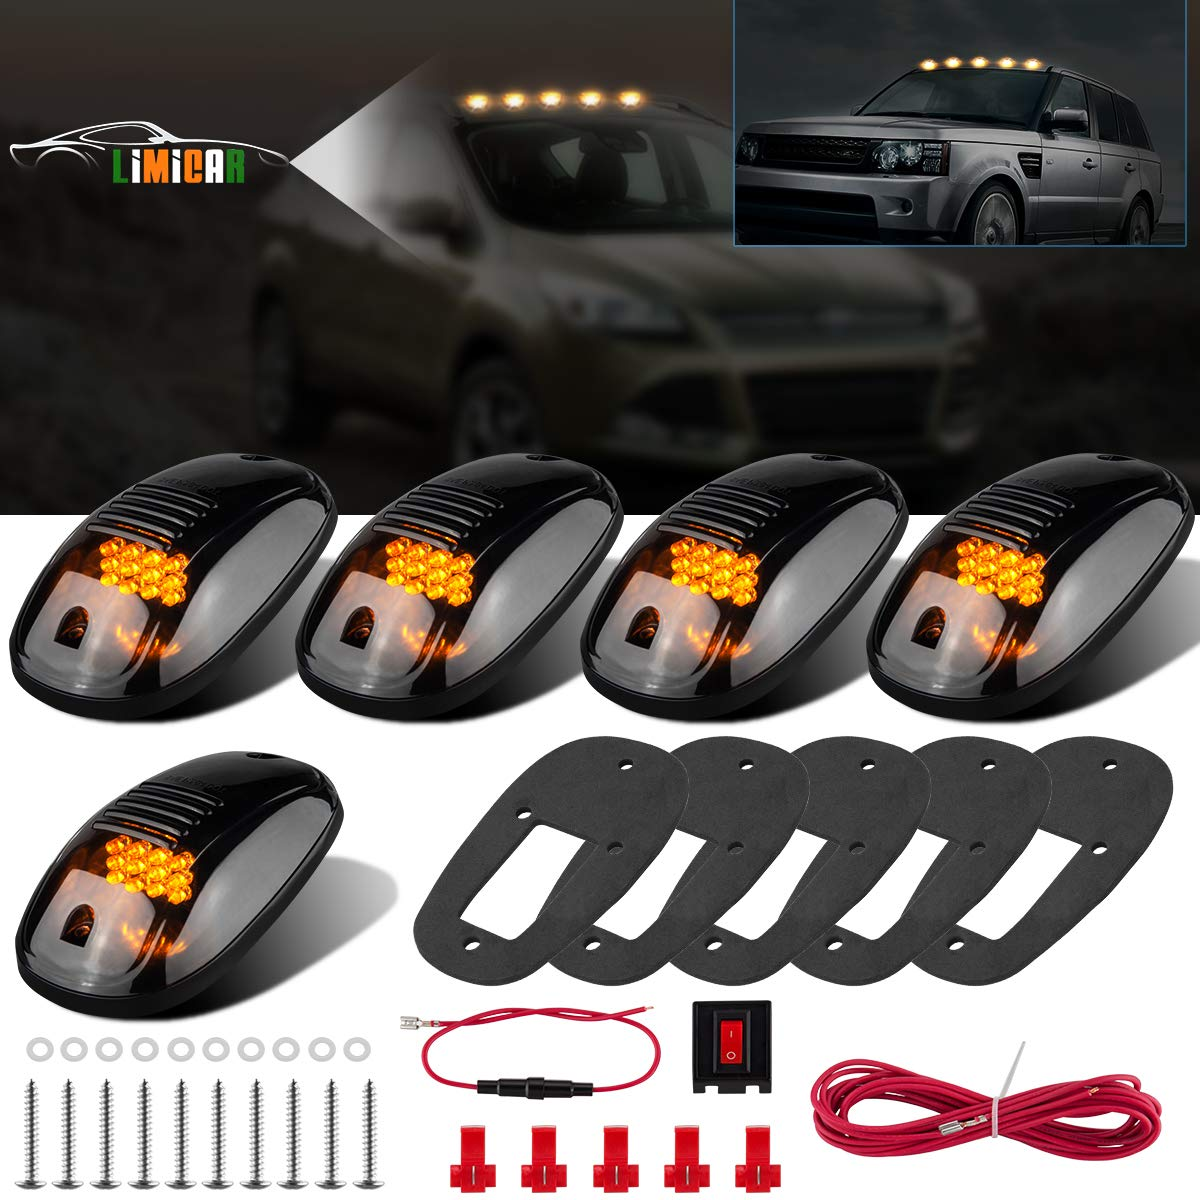 LIMICAR 5X Amber Cab Roof Marker Top Running 12LED Cab Lights Compatible w/ 03-10 Dodge Ram 1500 2500 3500 4500 11-16 Ram 1500 2500 3500 4500 5500 Pickup Trucks w/Stock Cab Marker Lights Cab Marker Roof Top Clearance Light